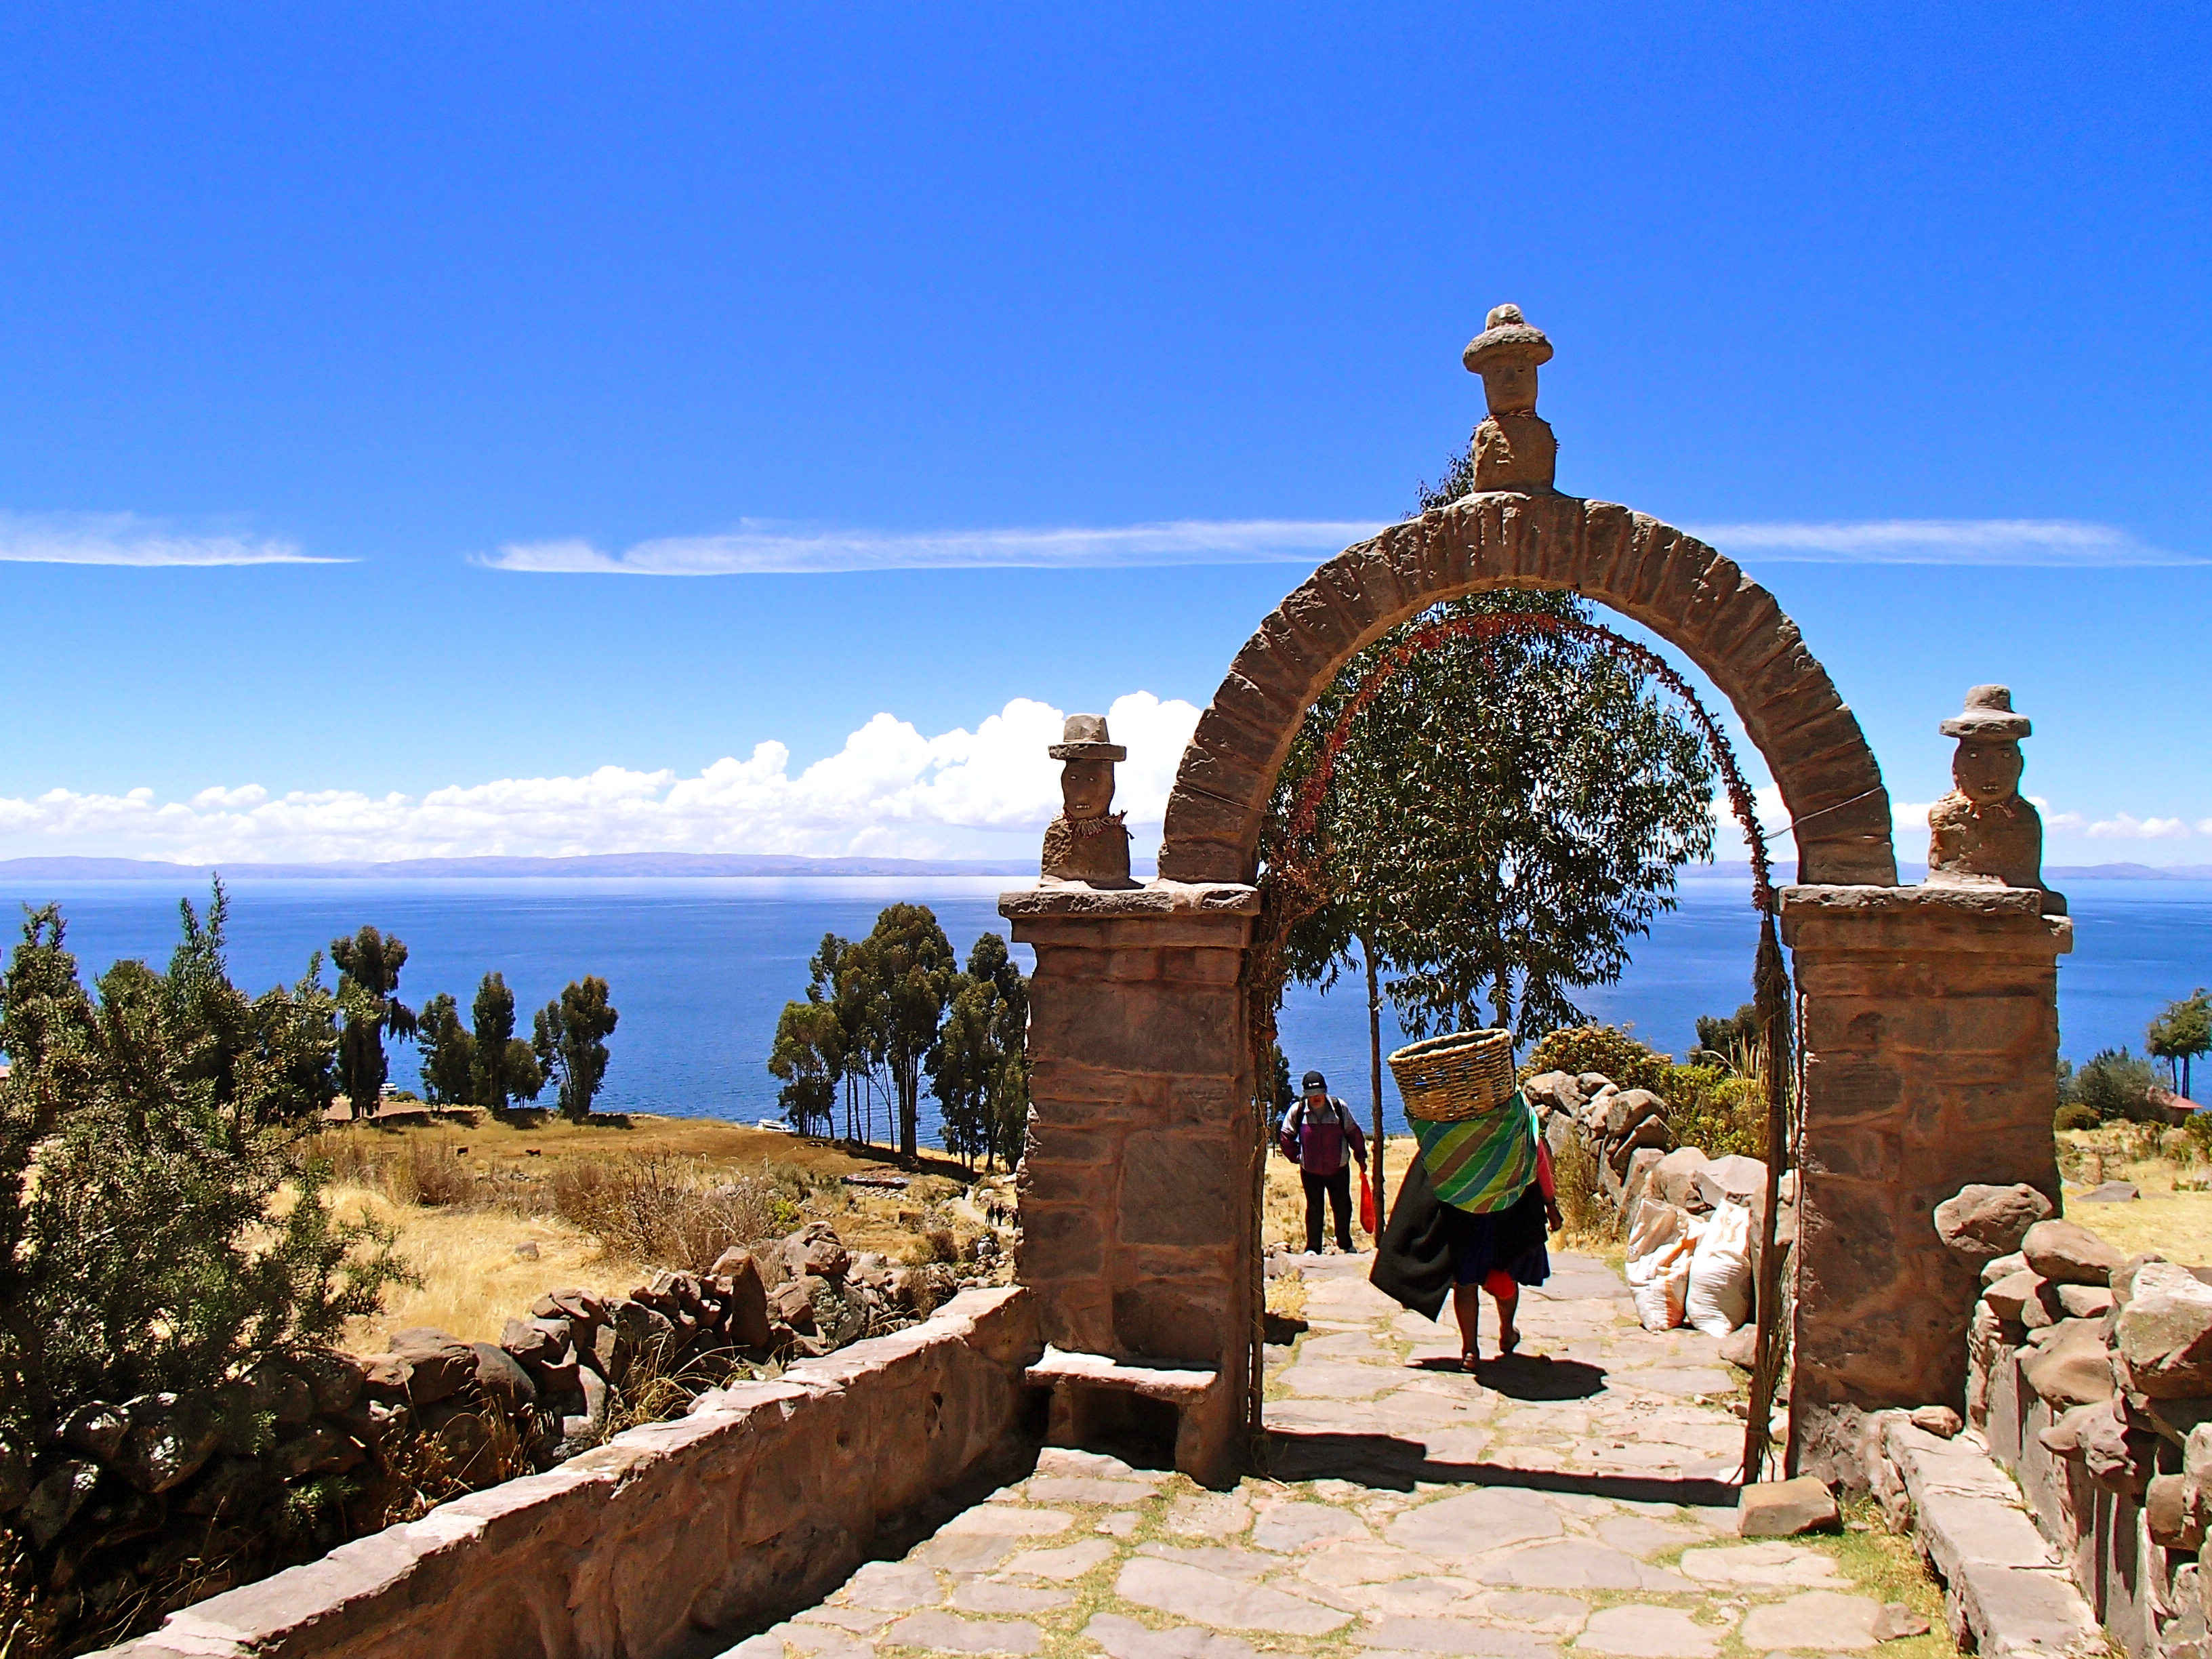 Peruvian cultural tourist attractions places to see in peru day trips from puno